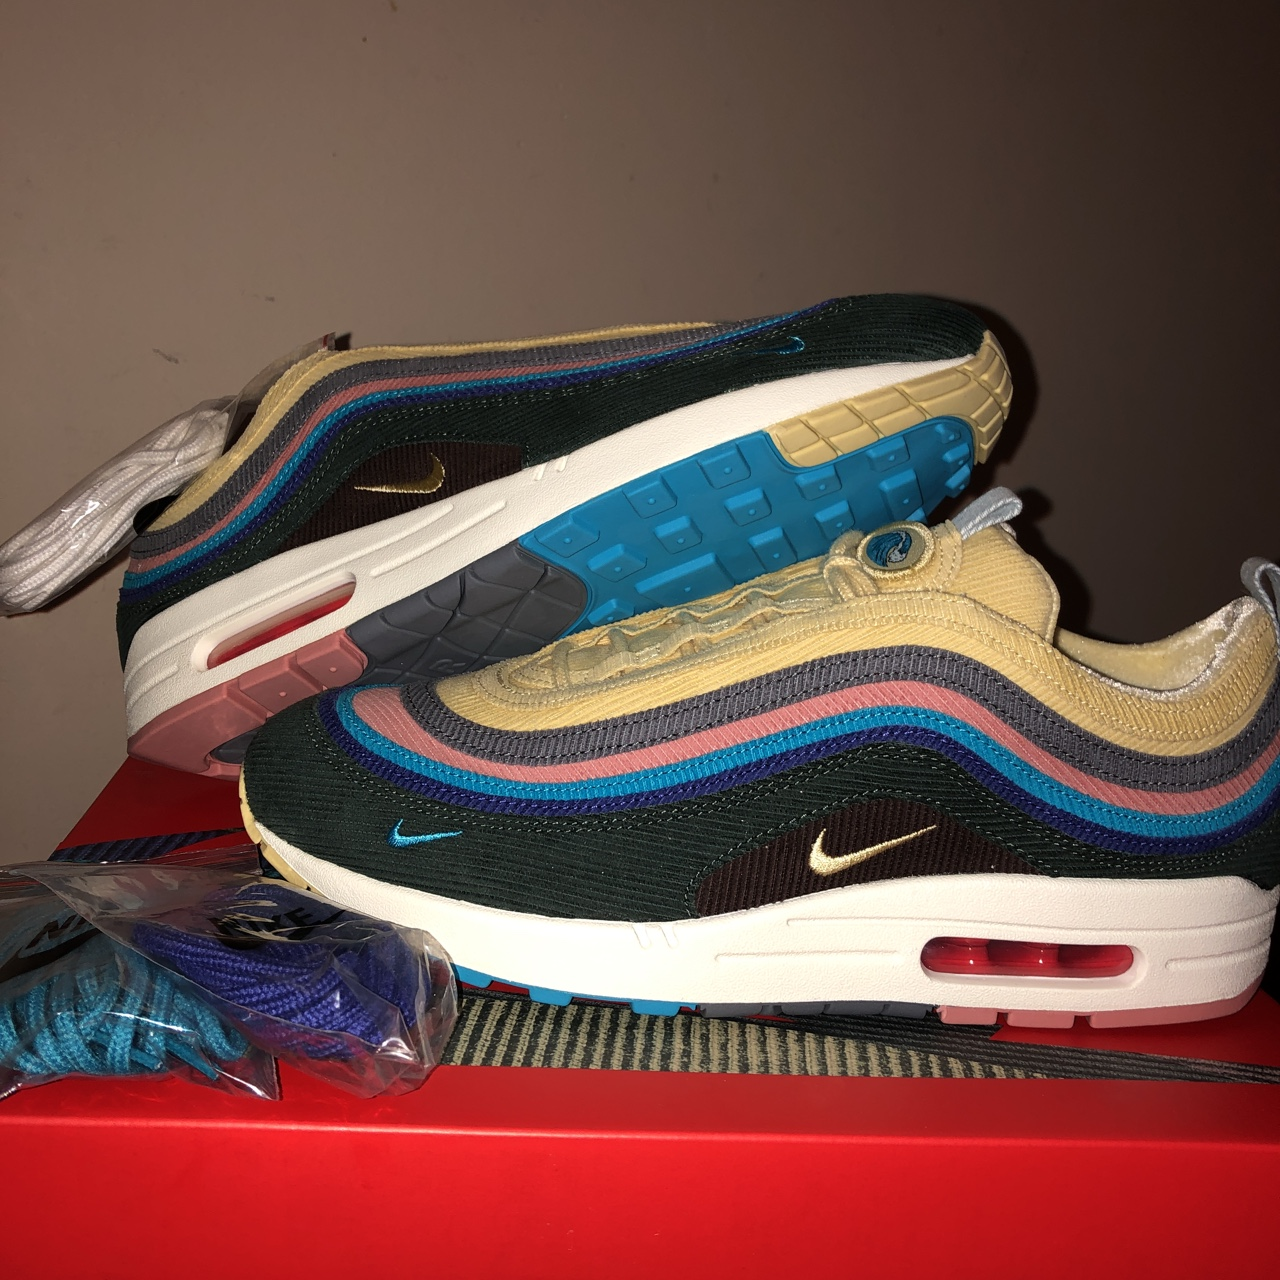 Nike Air Max 197 Sean Wotherspoon Sz 10.5 Contains Depop